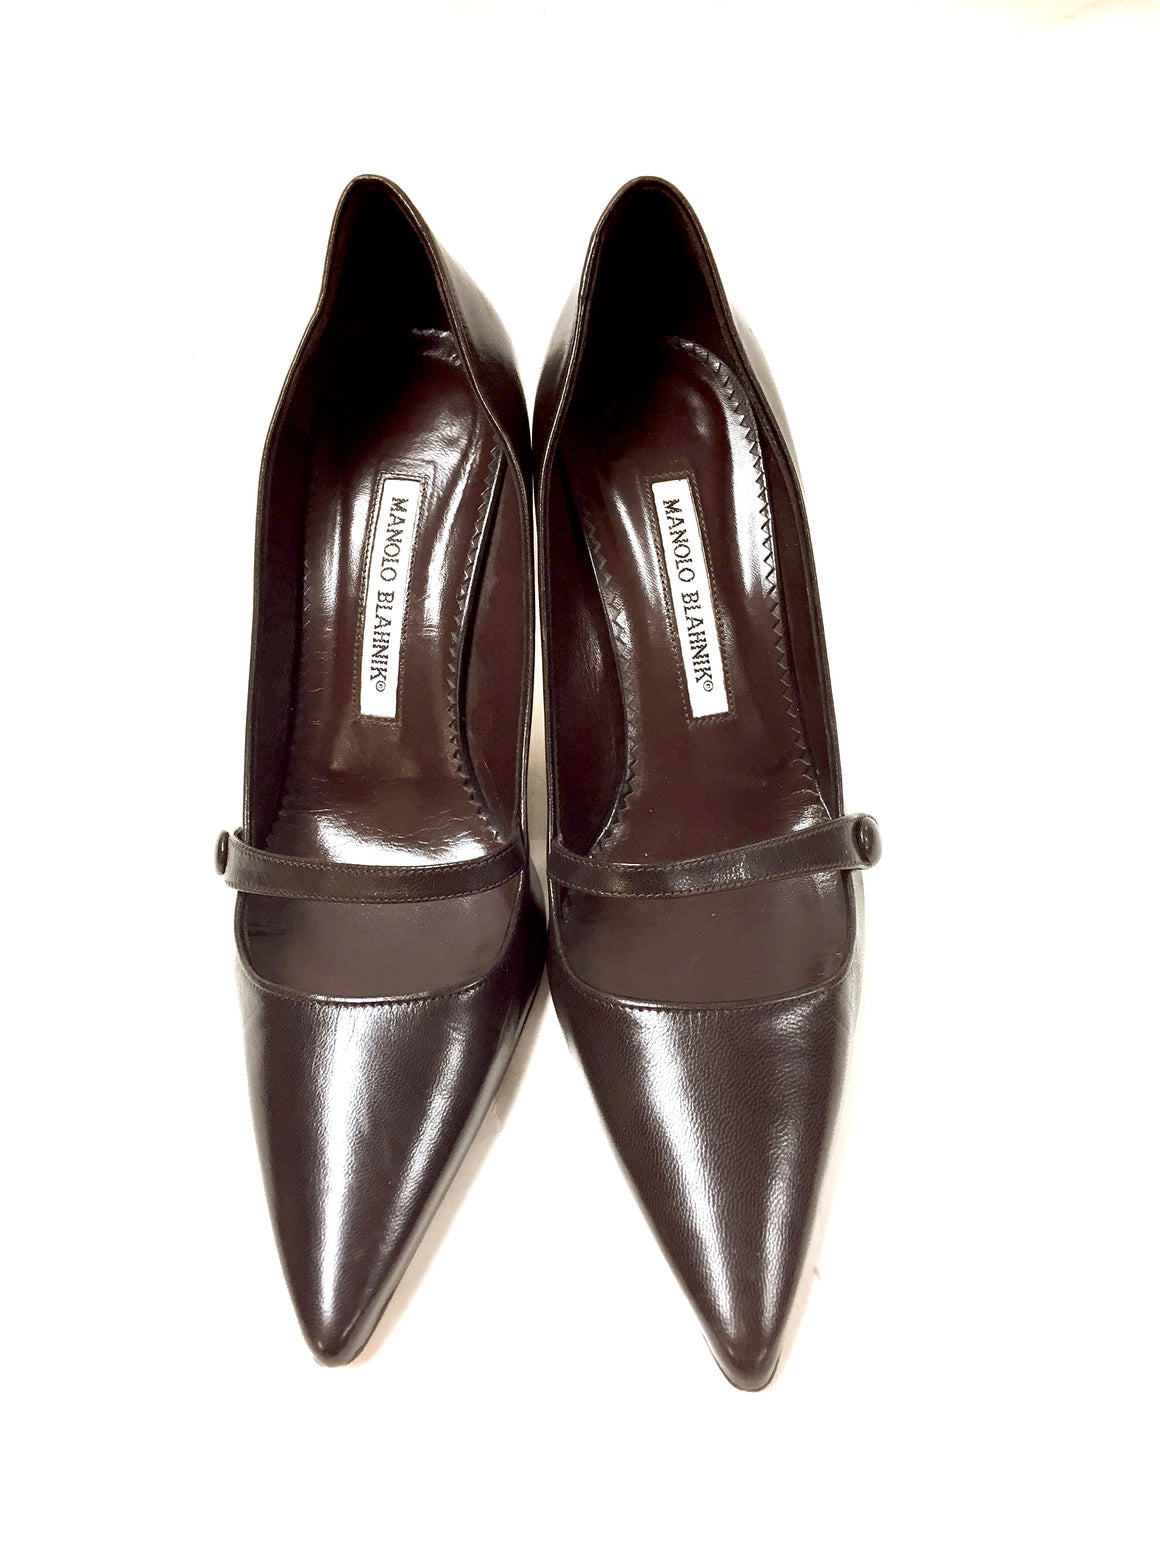 MANOLO BLAHNIK Brown Leather Mary Jane Heels Pumps Size: 38.5 / US 8.5